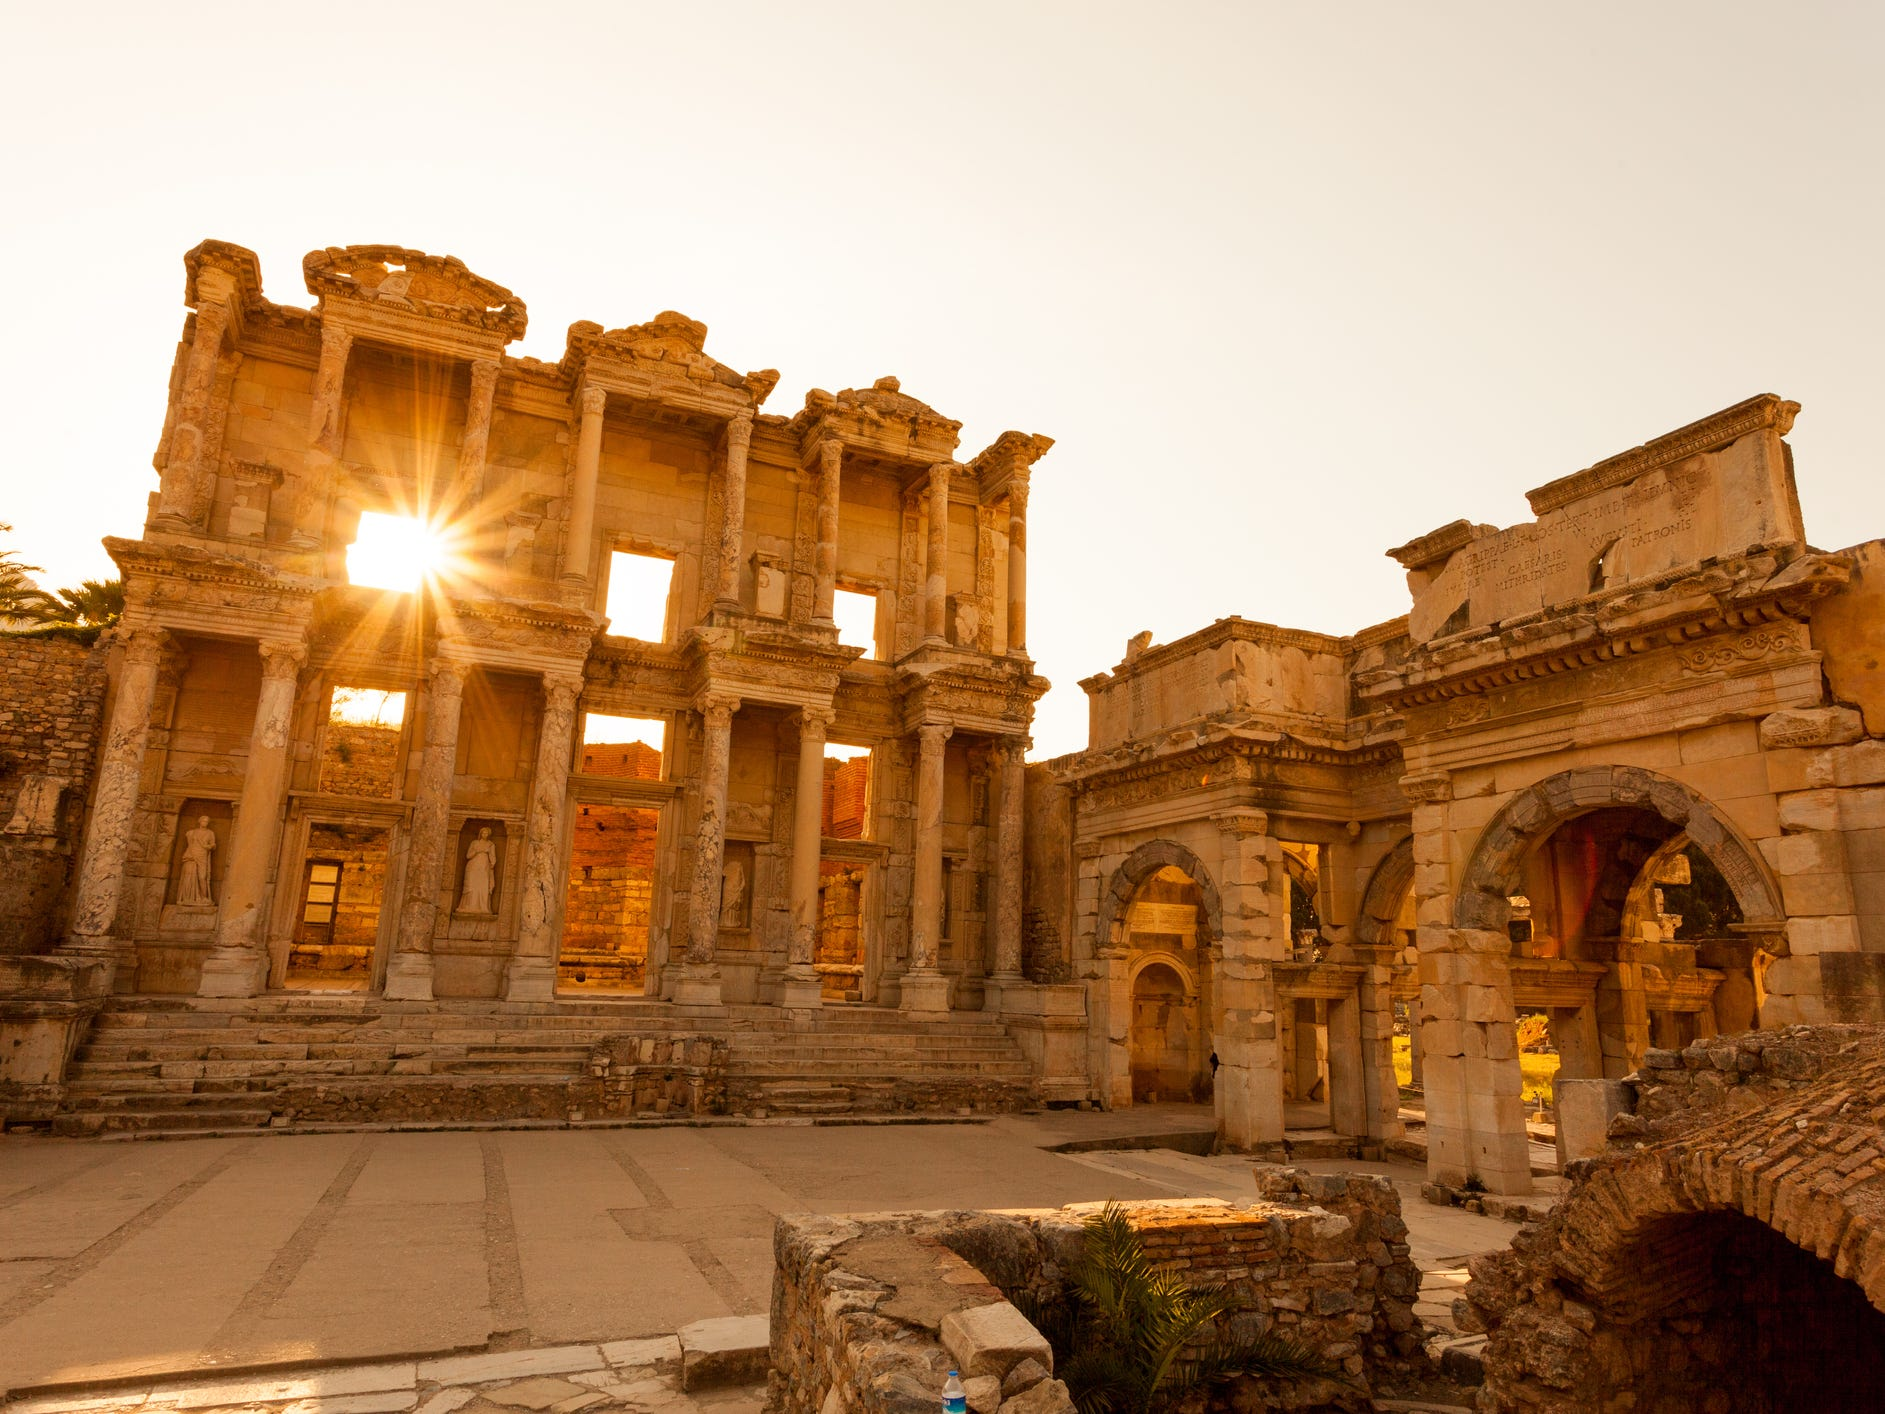 Discover ancient history in Turkey: From the famed city of Troy to the stunning archaeological ruins of Ephesus, Turkey's ancient treasures will appeal to any solo history buff. Learn about the country's past on Insight Vacations' 11-day Wonders of Turkey tour, which starts and ends in Istanbul. Beyond historical experiences, the trip also includes a stay in a cave hotel, a pottery-making demonstration and a performance by whirling dervishes. Insight Vacations is reducing or waiving single supplements on select departures in summer and winter 2019.